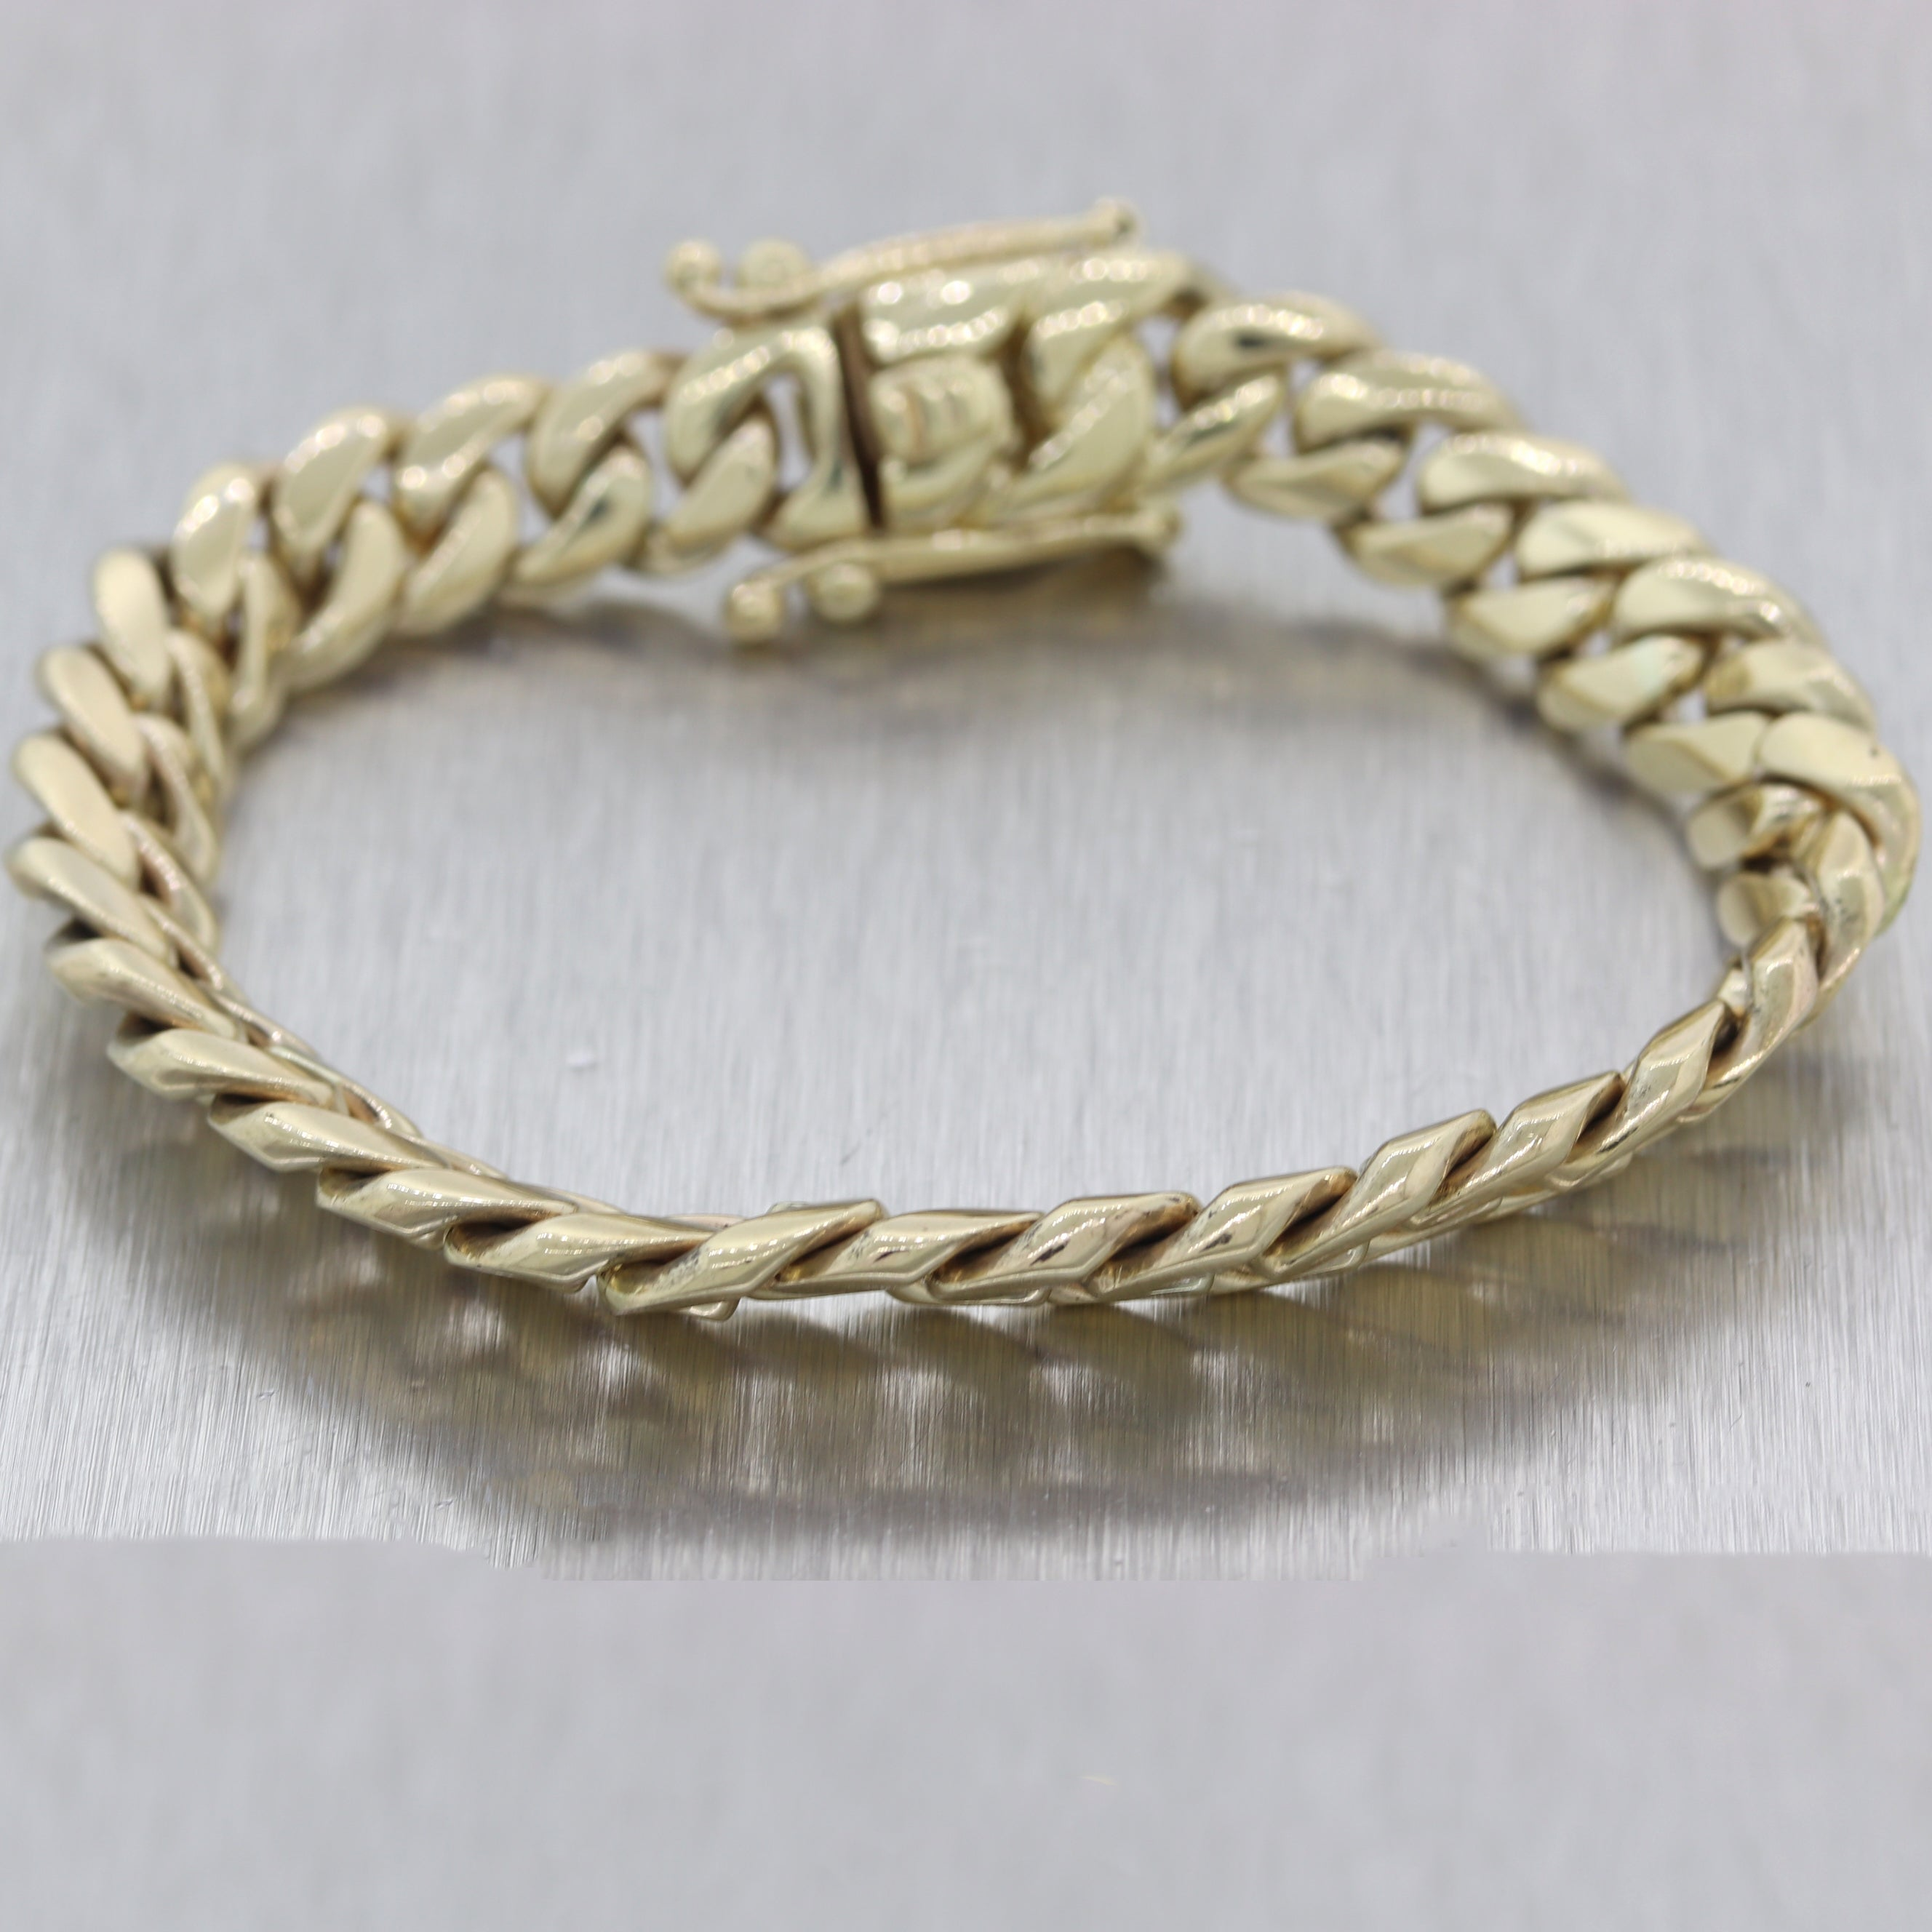 Modern 62.46g 10k Yellow Gold Cuban Link Chain Bracelet